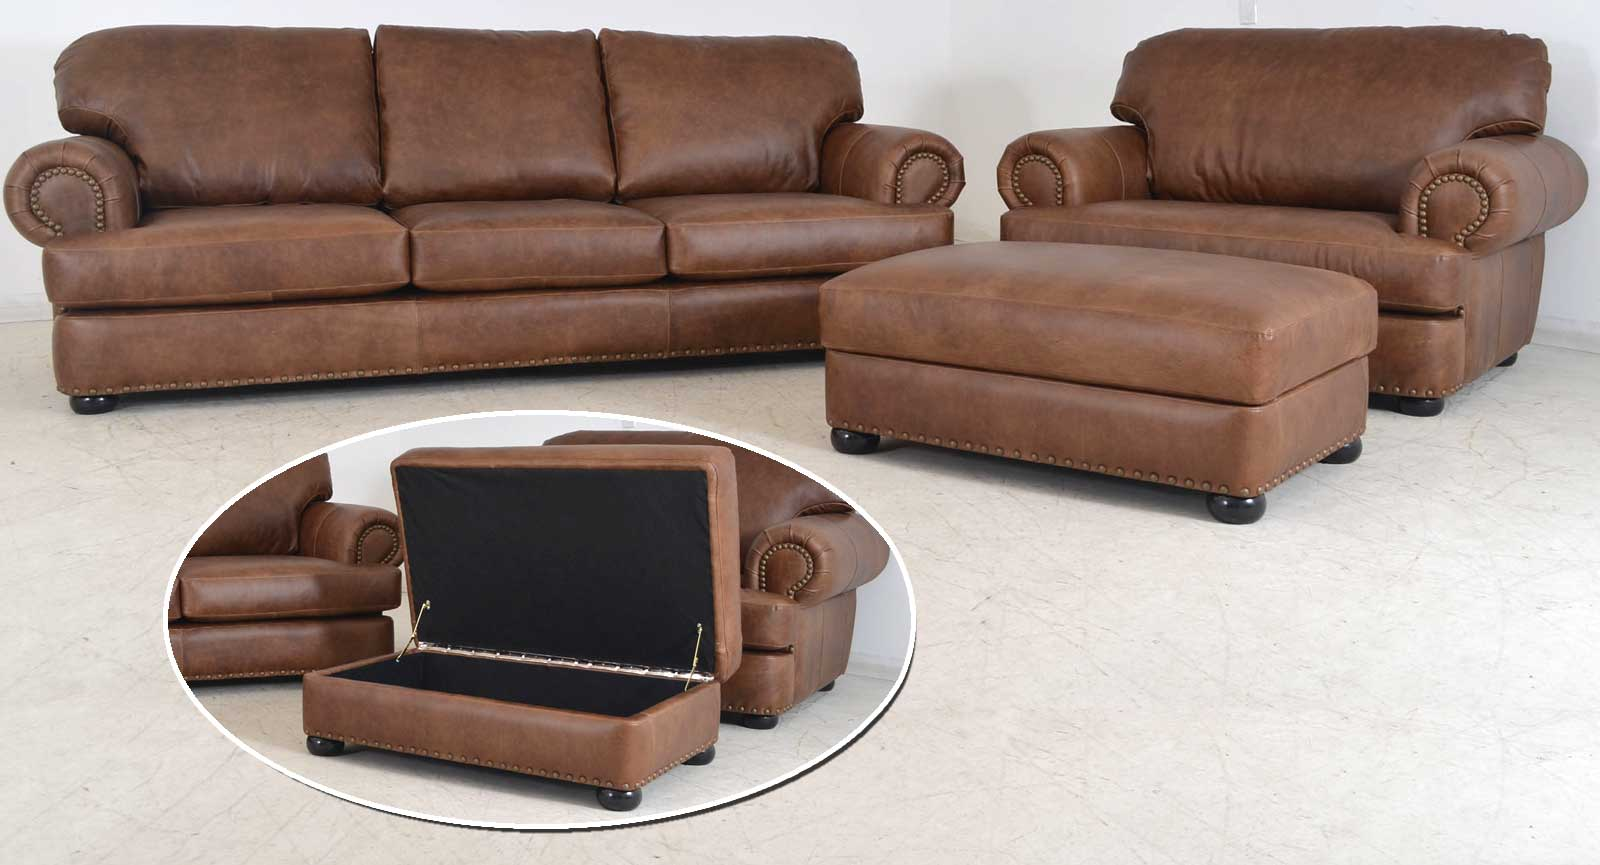 Three Seat Sofa Chair And Half Ottoman Open